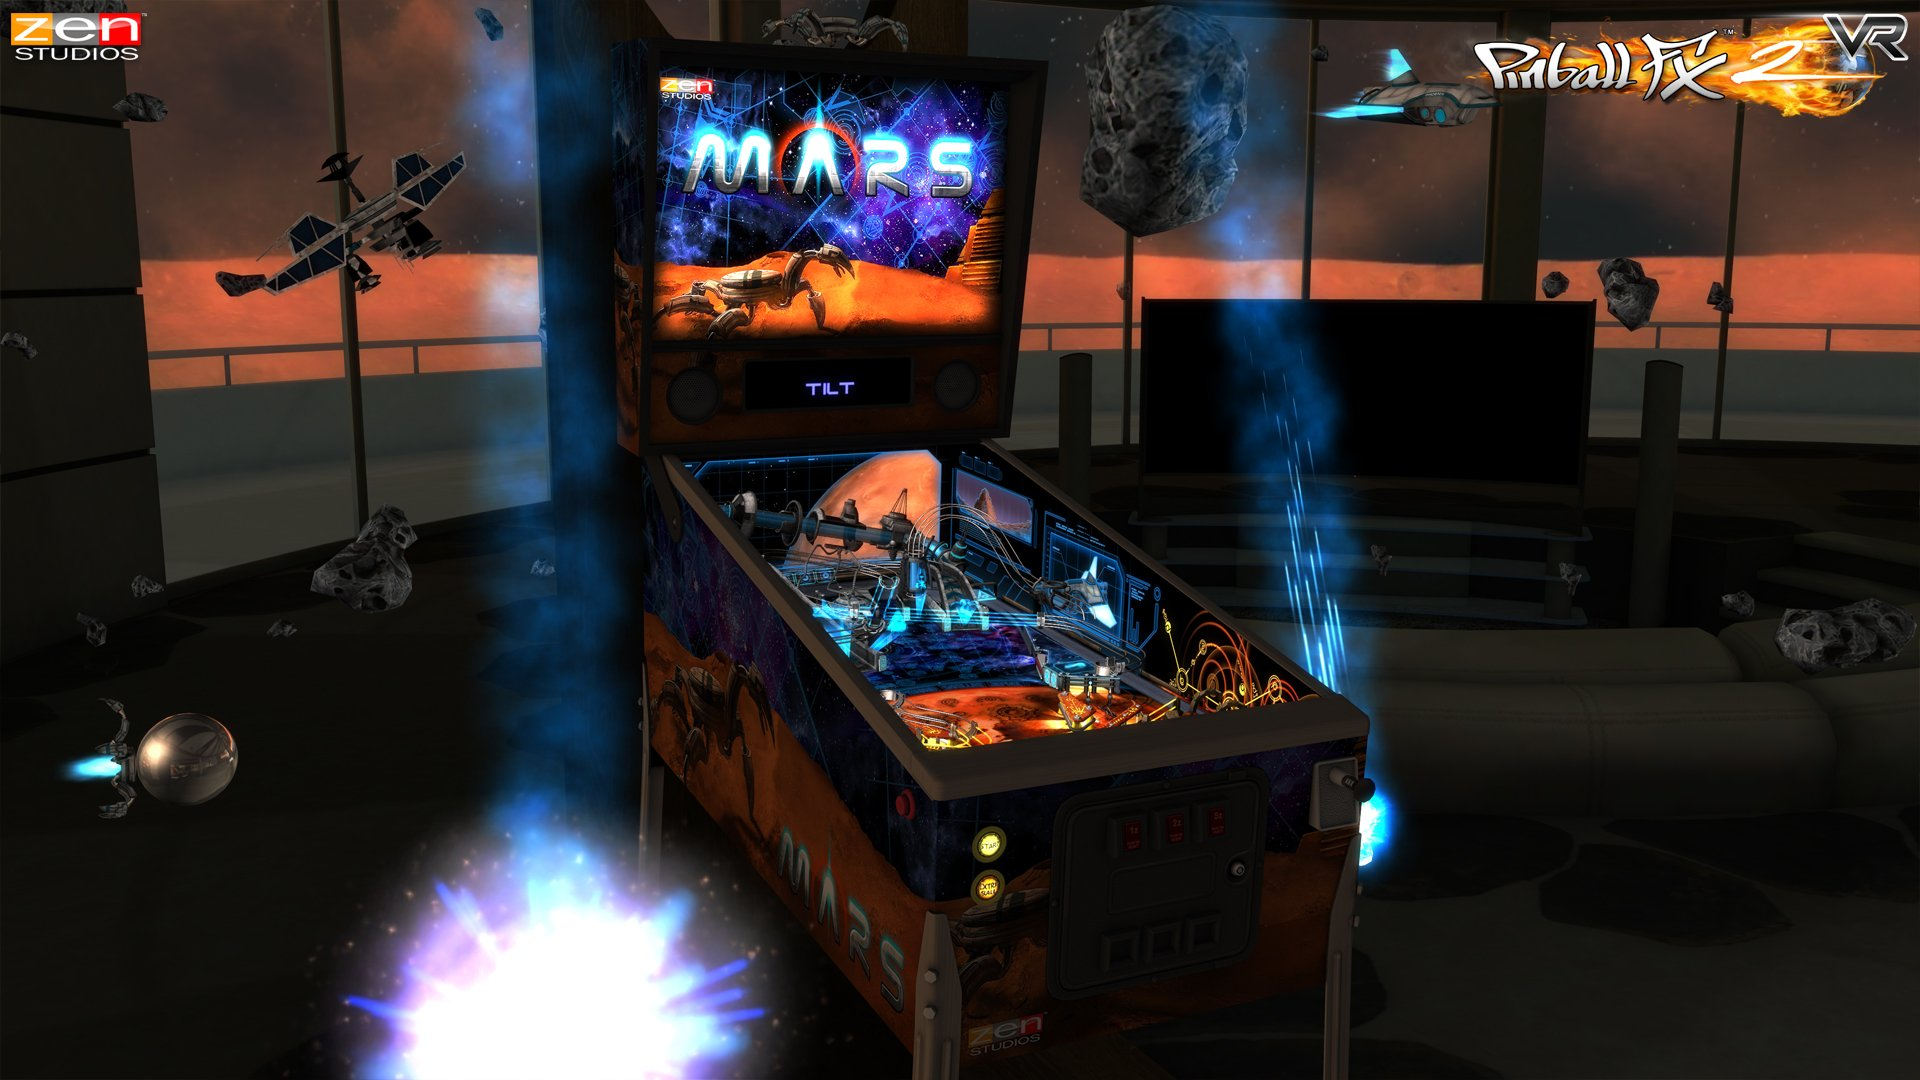 Pinball_FX2_VR_gear_vr_screenshot_Mars